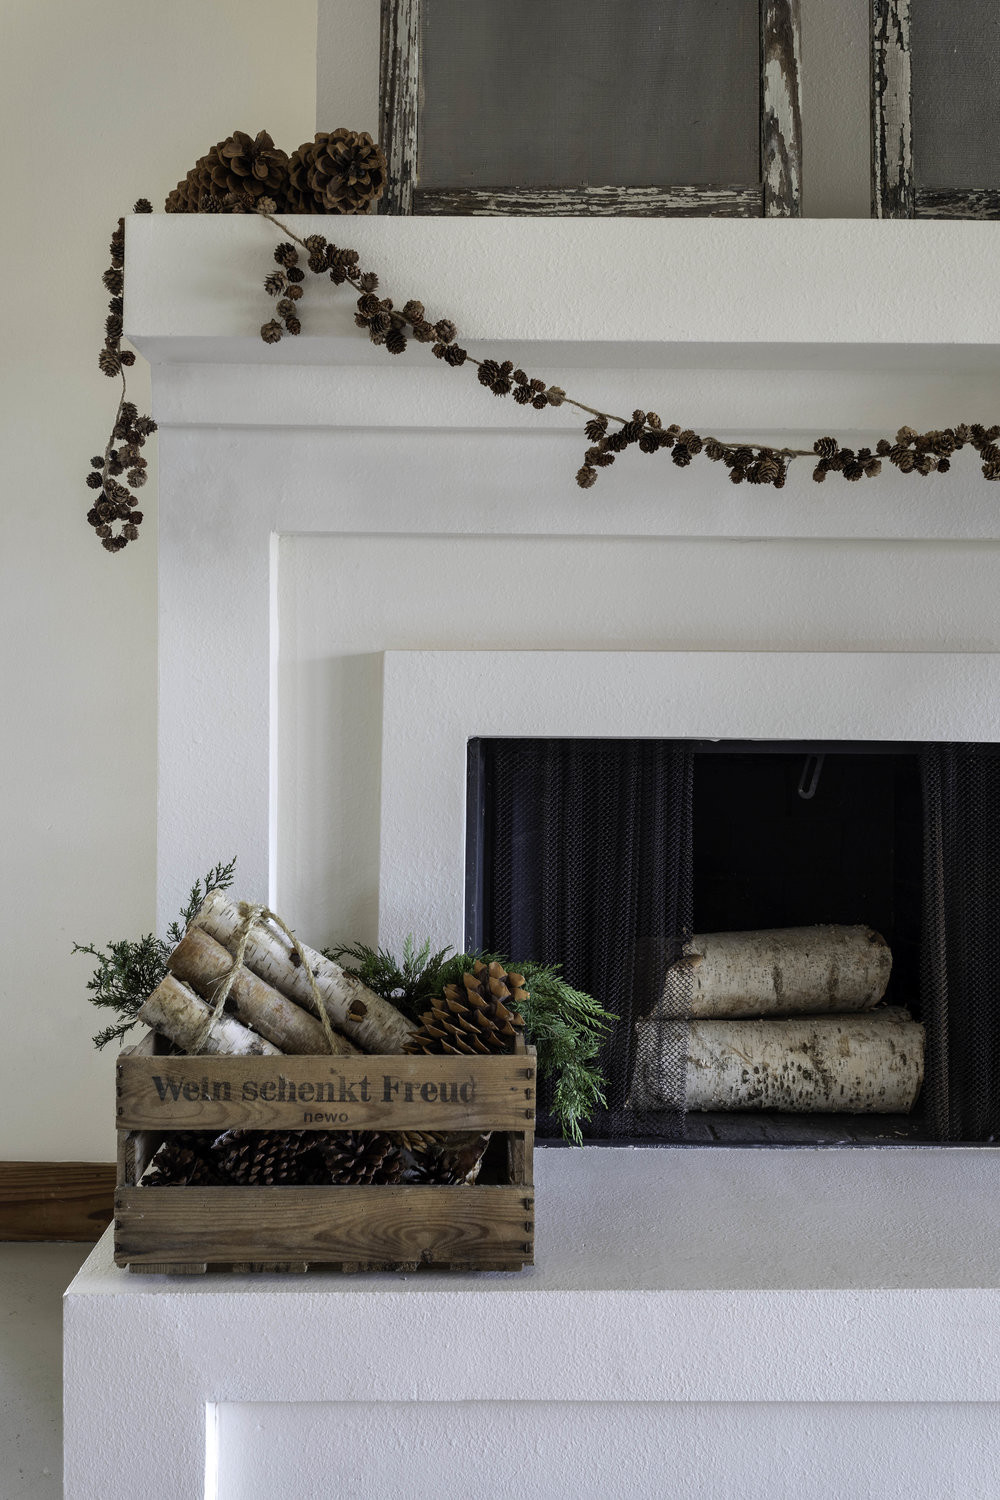 RVT Swedish Christmas. Paige's Blog. Family Heirlooms. Natural holiday decor. Christmas. Fireplace. Fireside. Birch logs